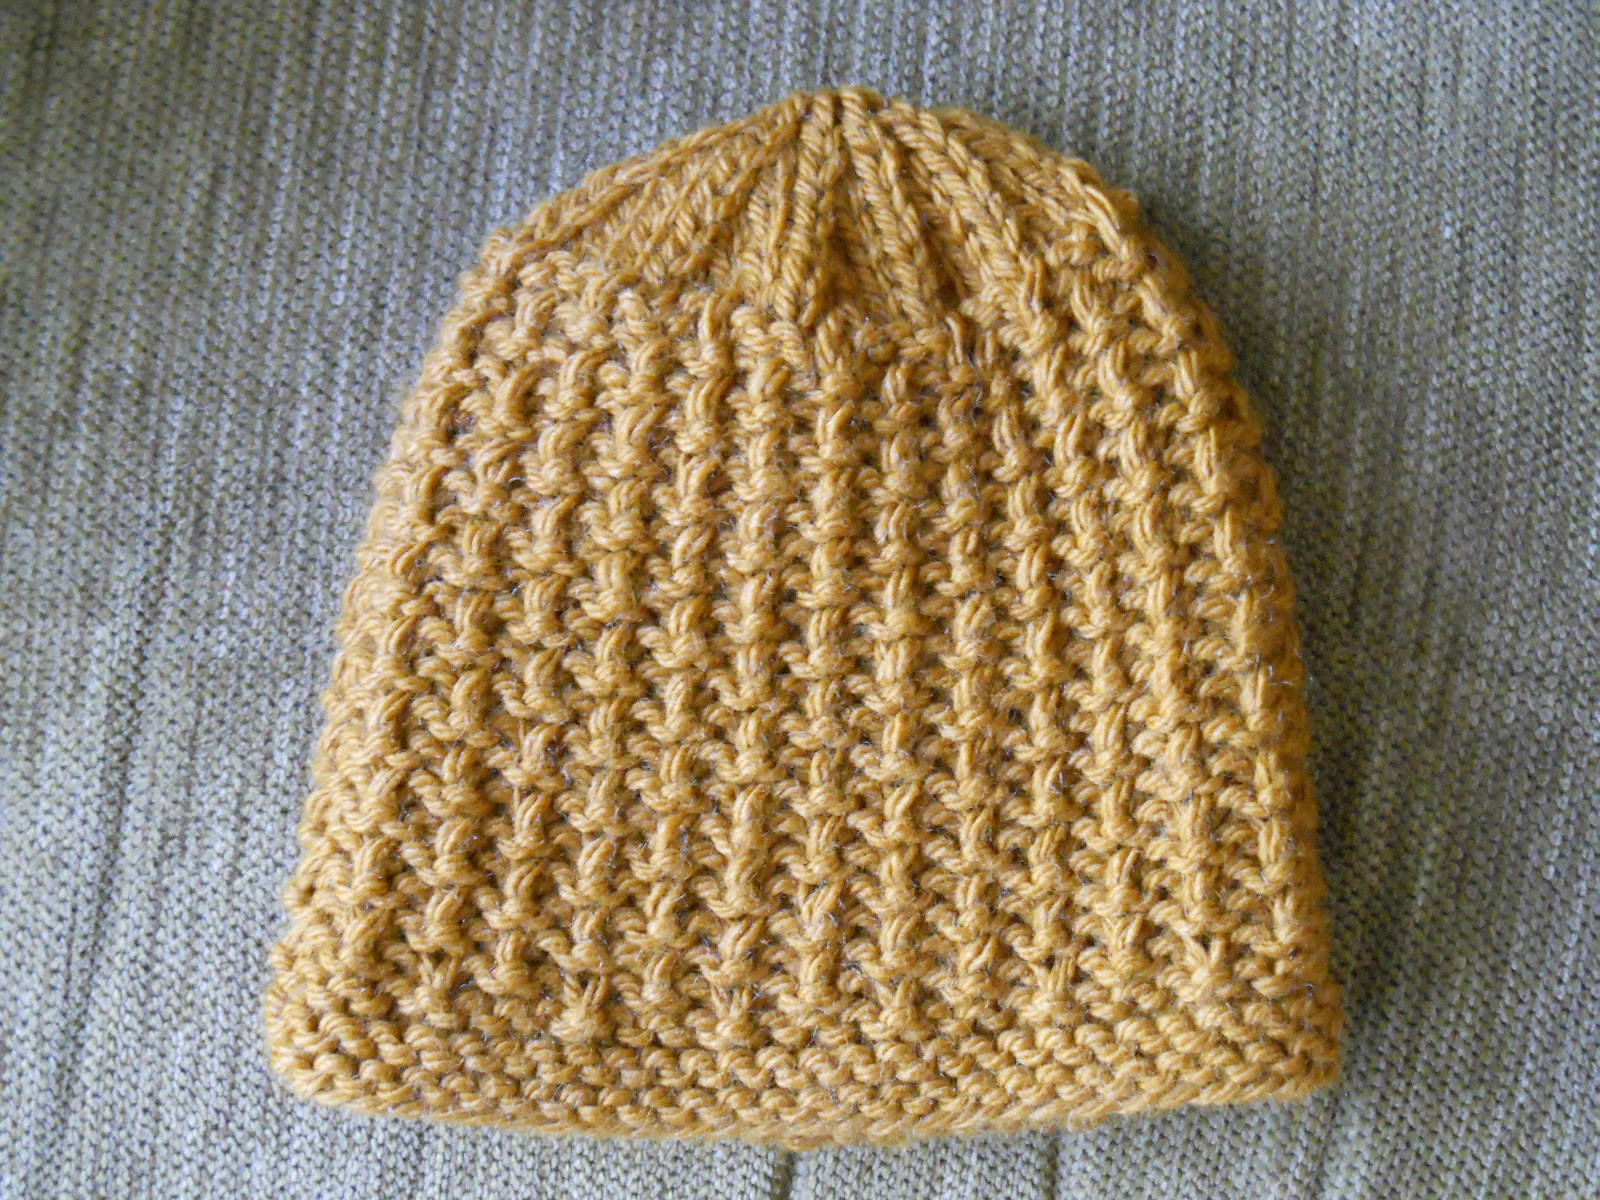 Knitting with Schnapps: Introducing the Headstrong Head Hugger!